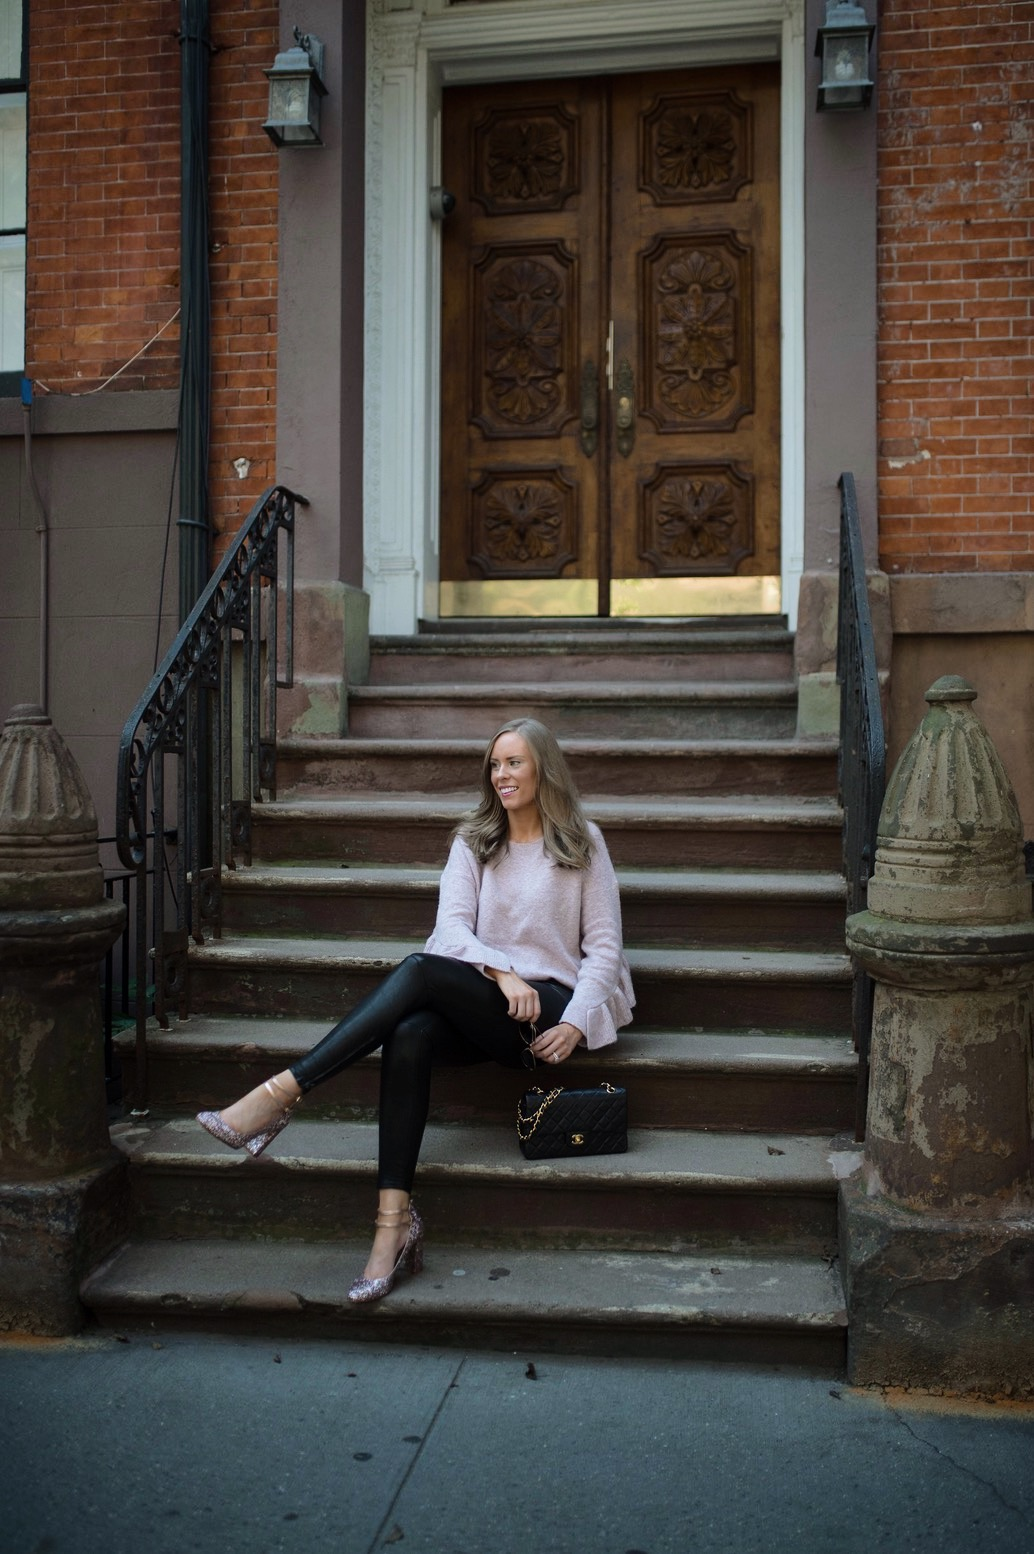 French-Connection-Blush-Sweater-Ruffles-j-brand-black-leather-pants-new-york-street-style-nyc-fashion-blogger-outfit-ideas-style-elixir-lauren-slade-1